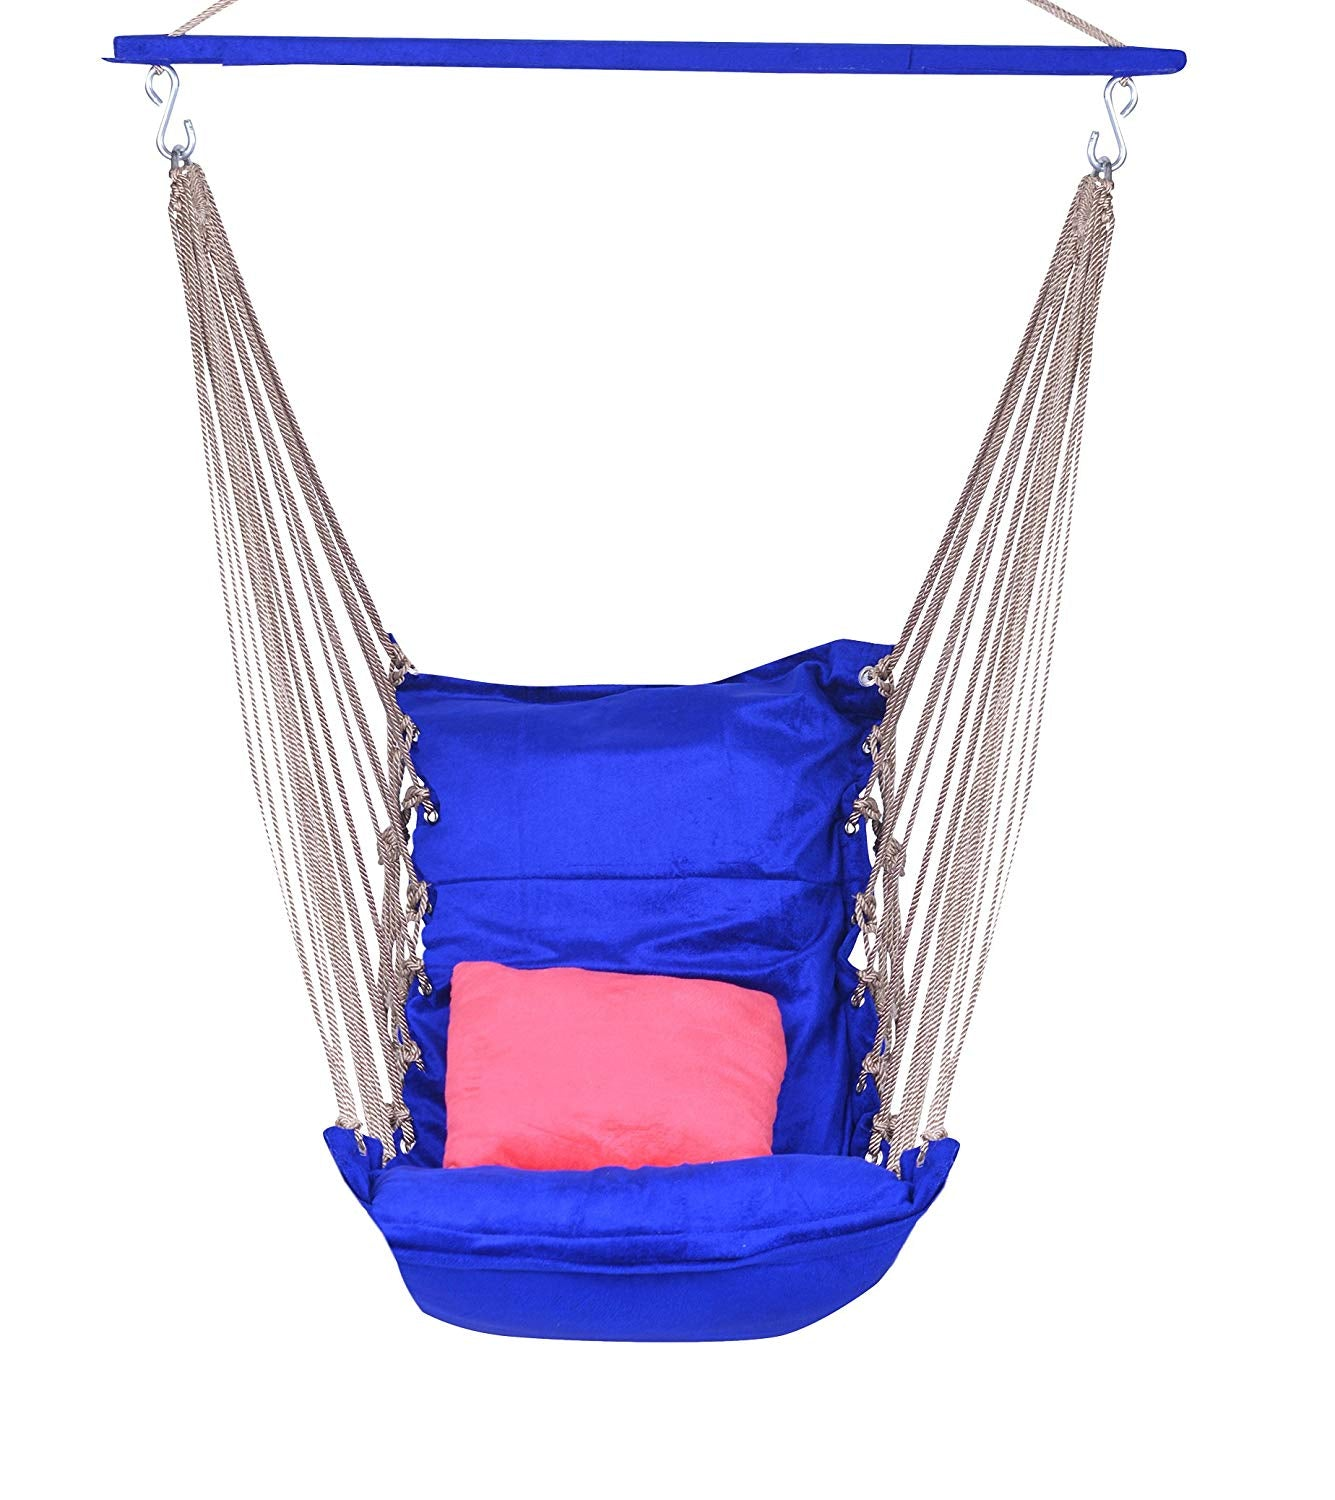 IRA Velvet Cotton Adult Swings Hammock Chair With Cushion - IRA Furniture